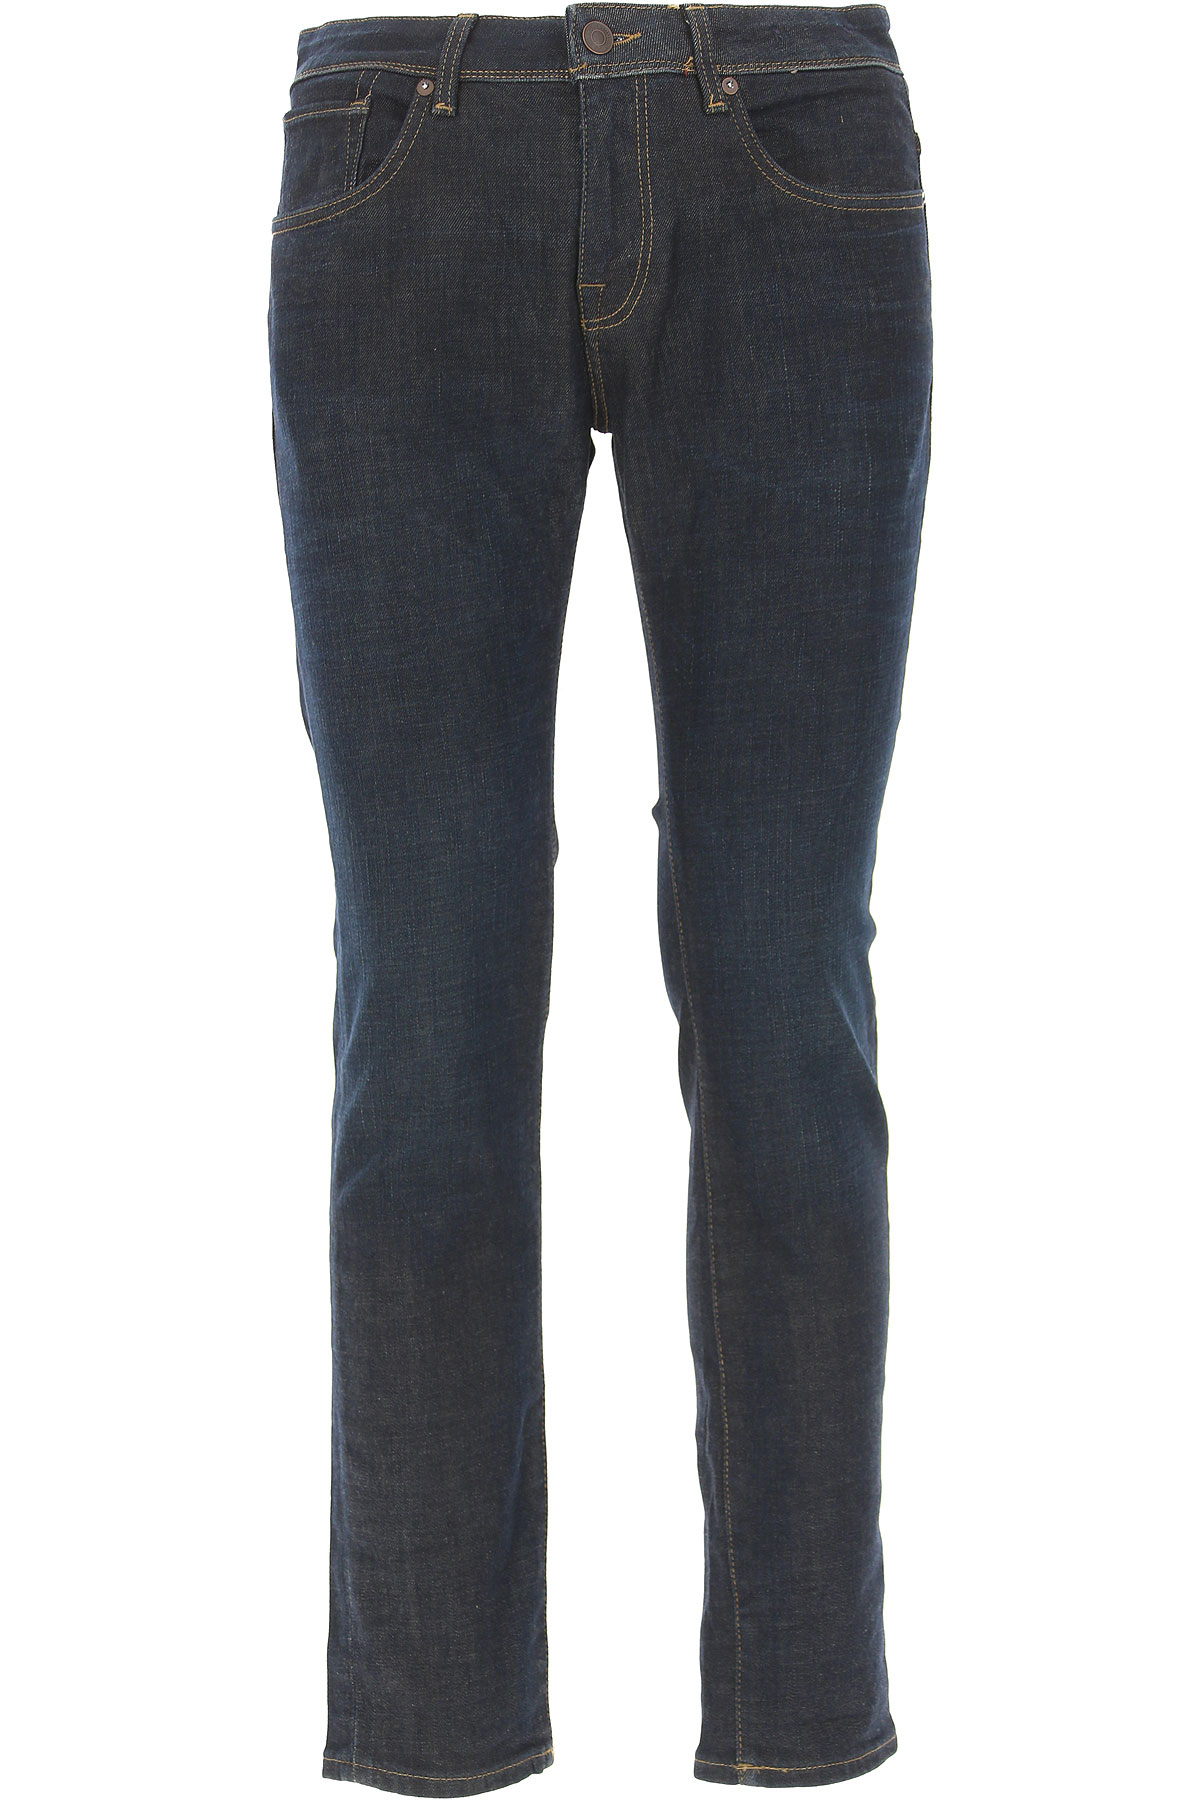 Image of Selected Jeans, Denim Blue, Cotton, 2017, 31 33 35